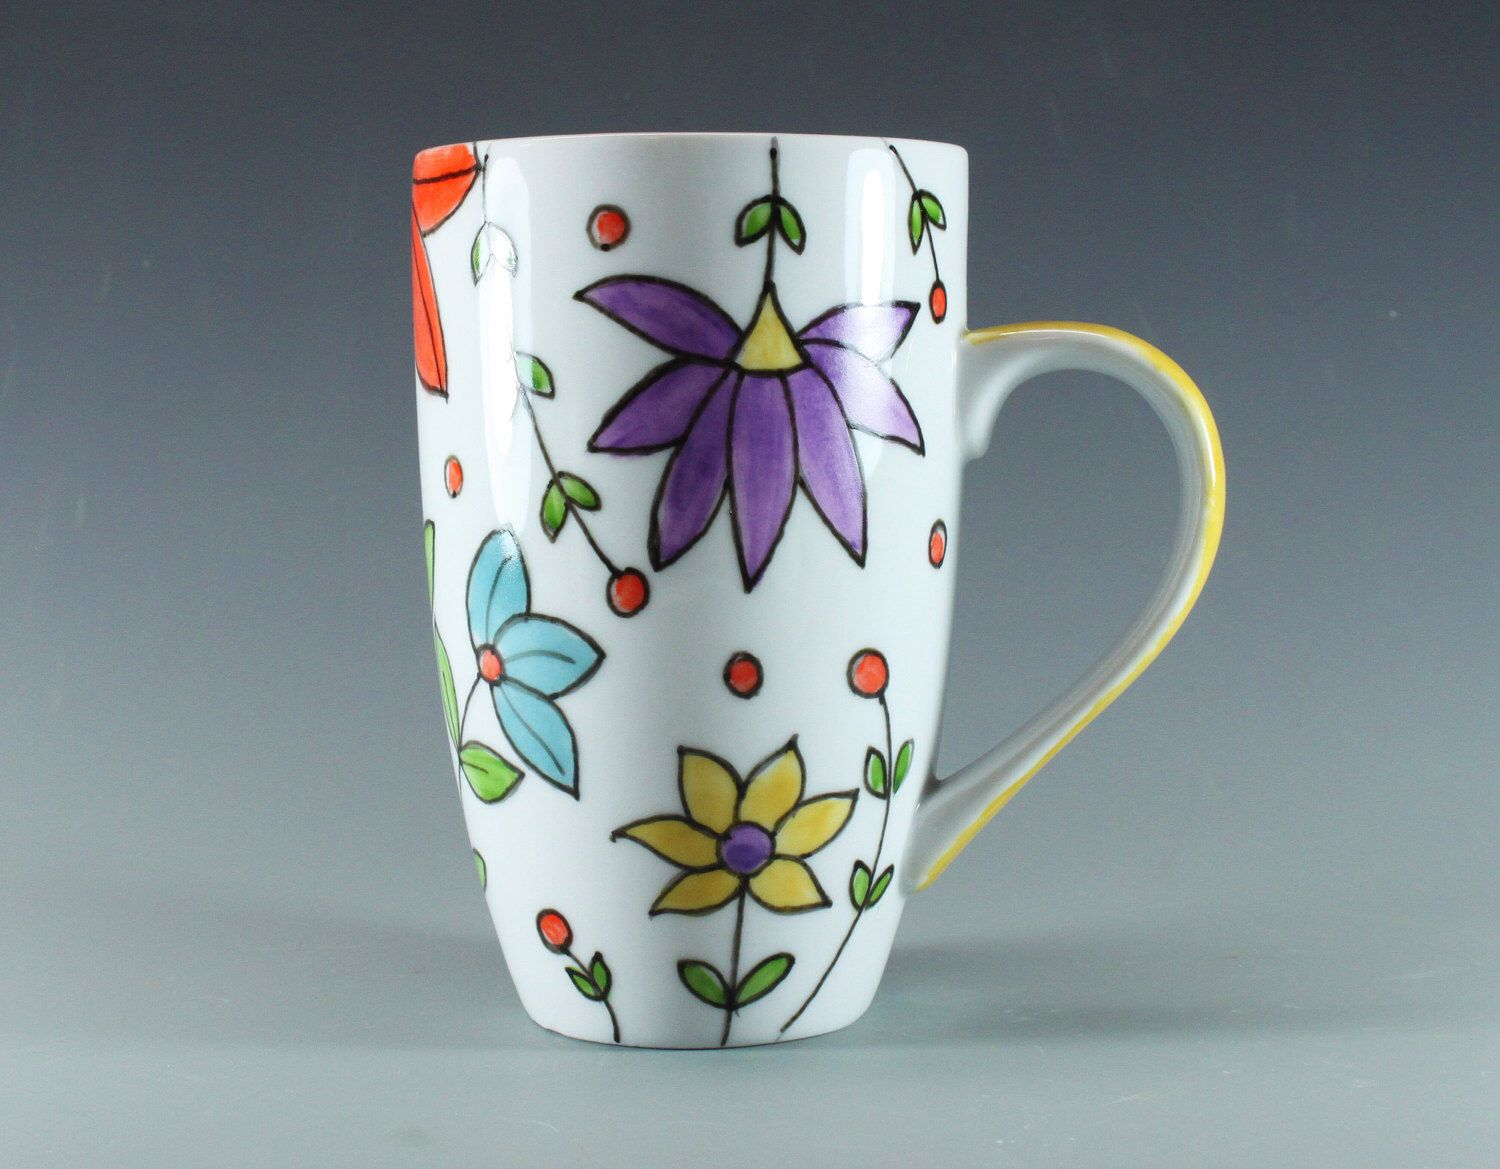 Handmade Pottery Mug, Spring Flowers, Hand painted, China Latte Mug, Ceramic Coffe Mug, Yellow Handle, SKU1412-1 by ateliermarla on Etsy https://www.etsy.com/listing/214146570/handmade-pottery-mug-spring-flowers-hand